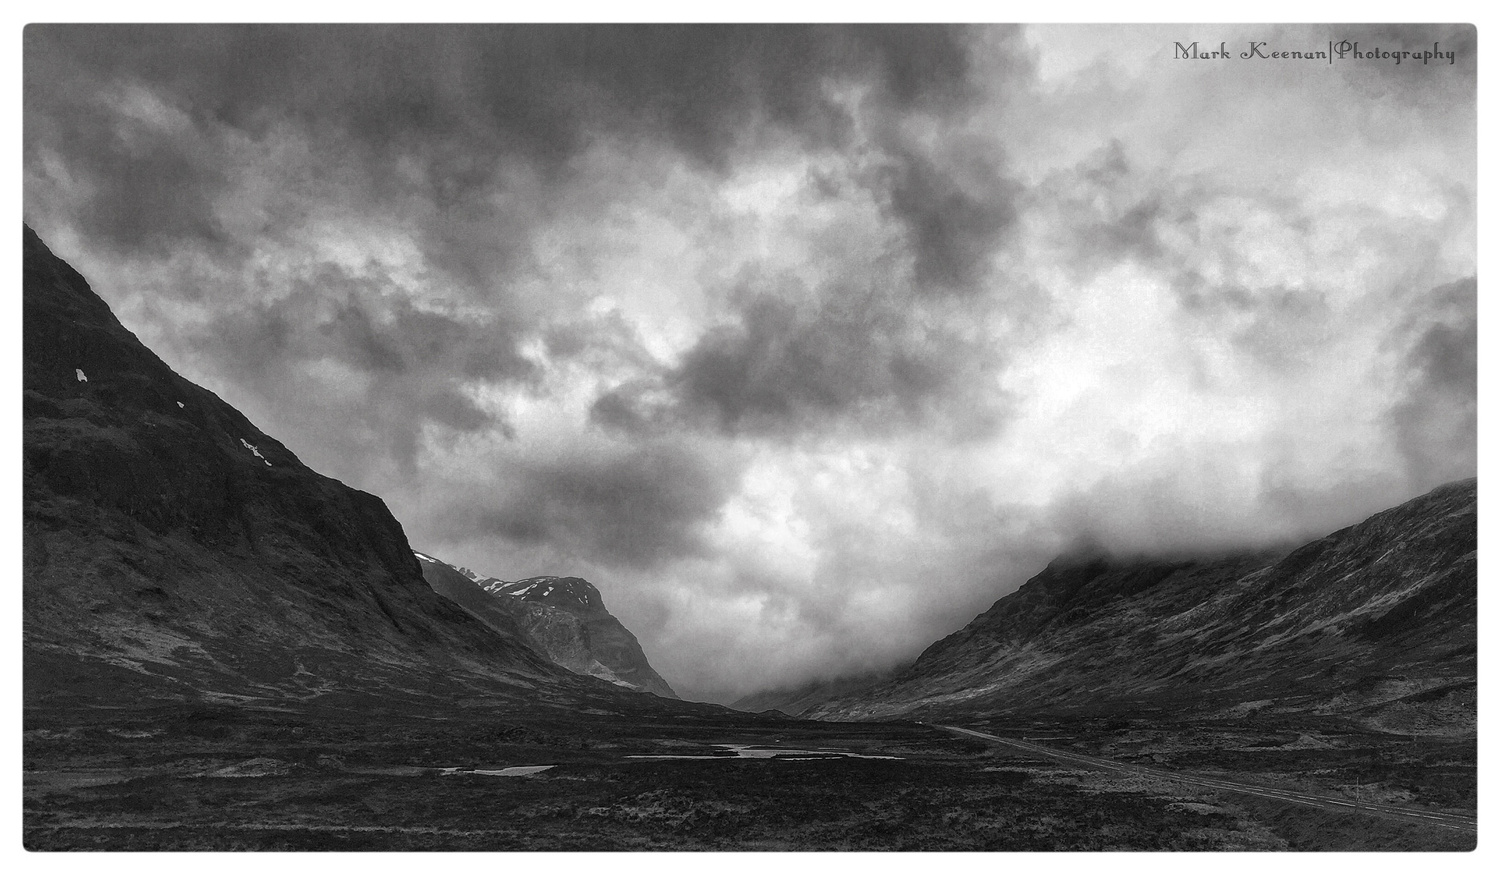 Glencoe by Mark Keenan